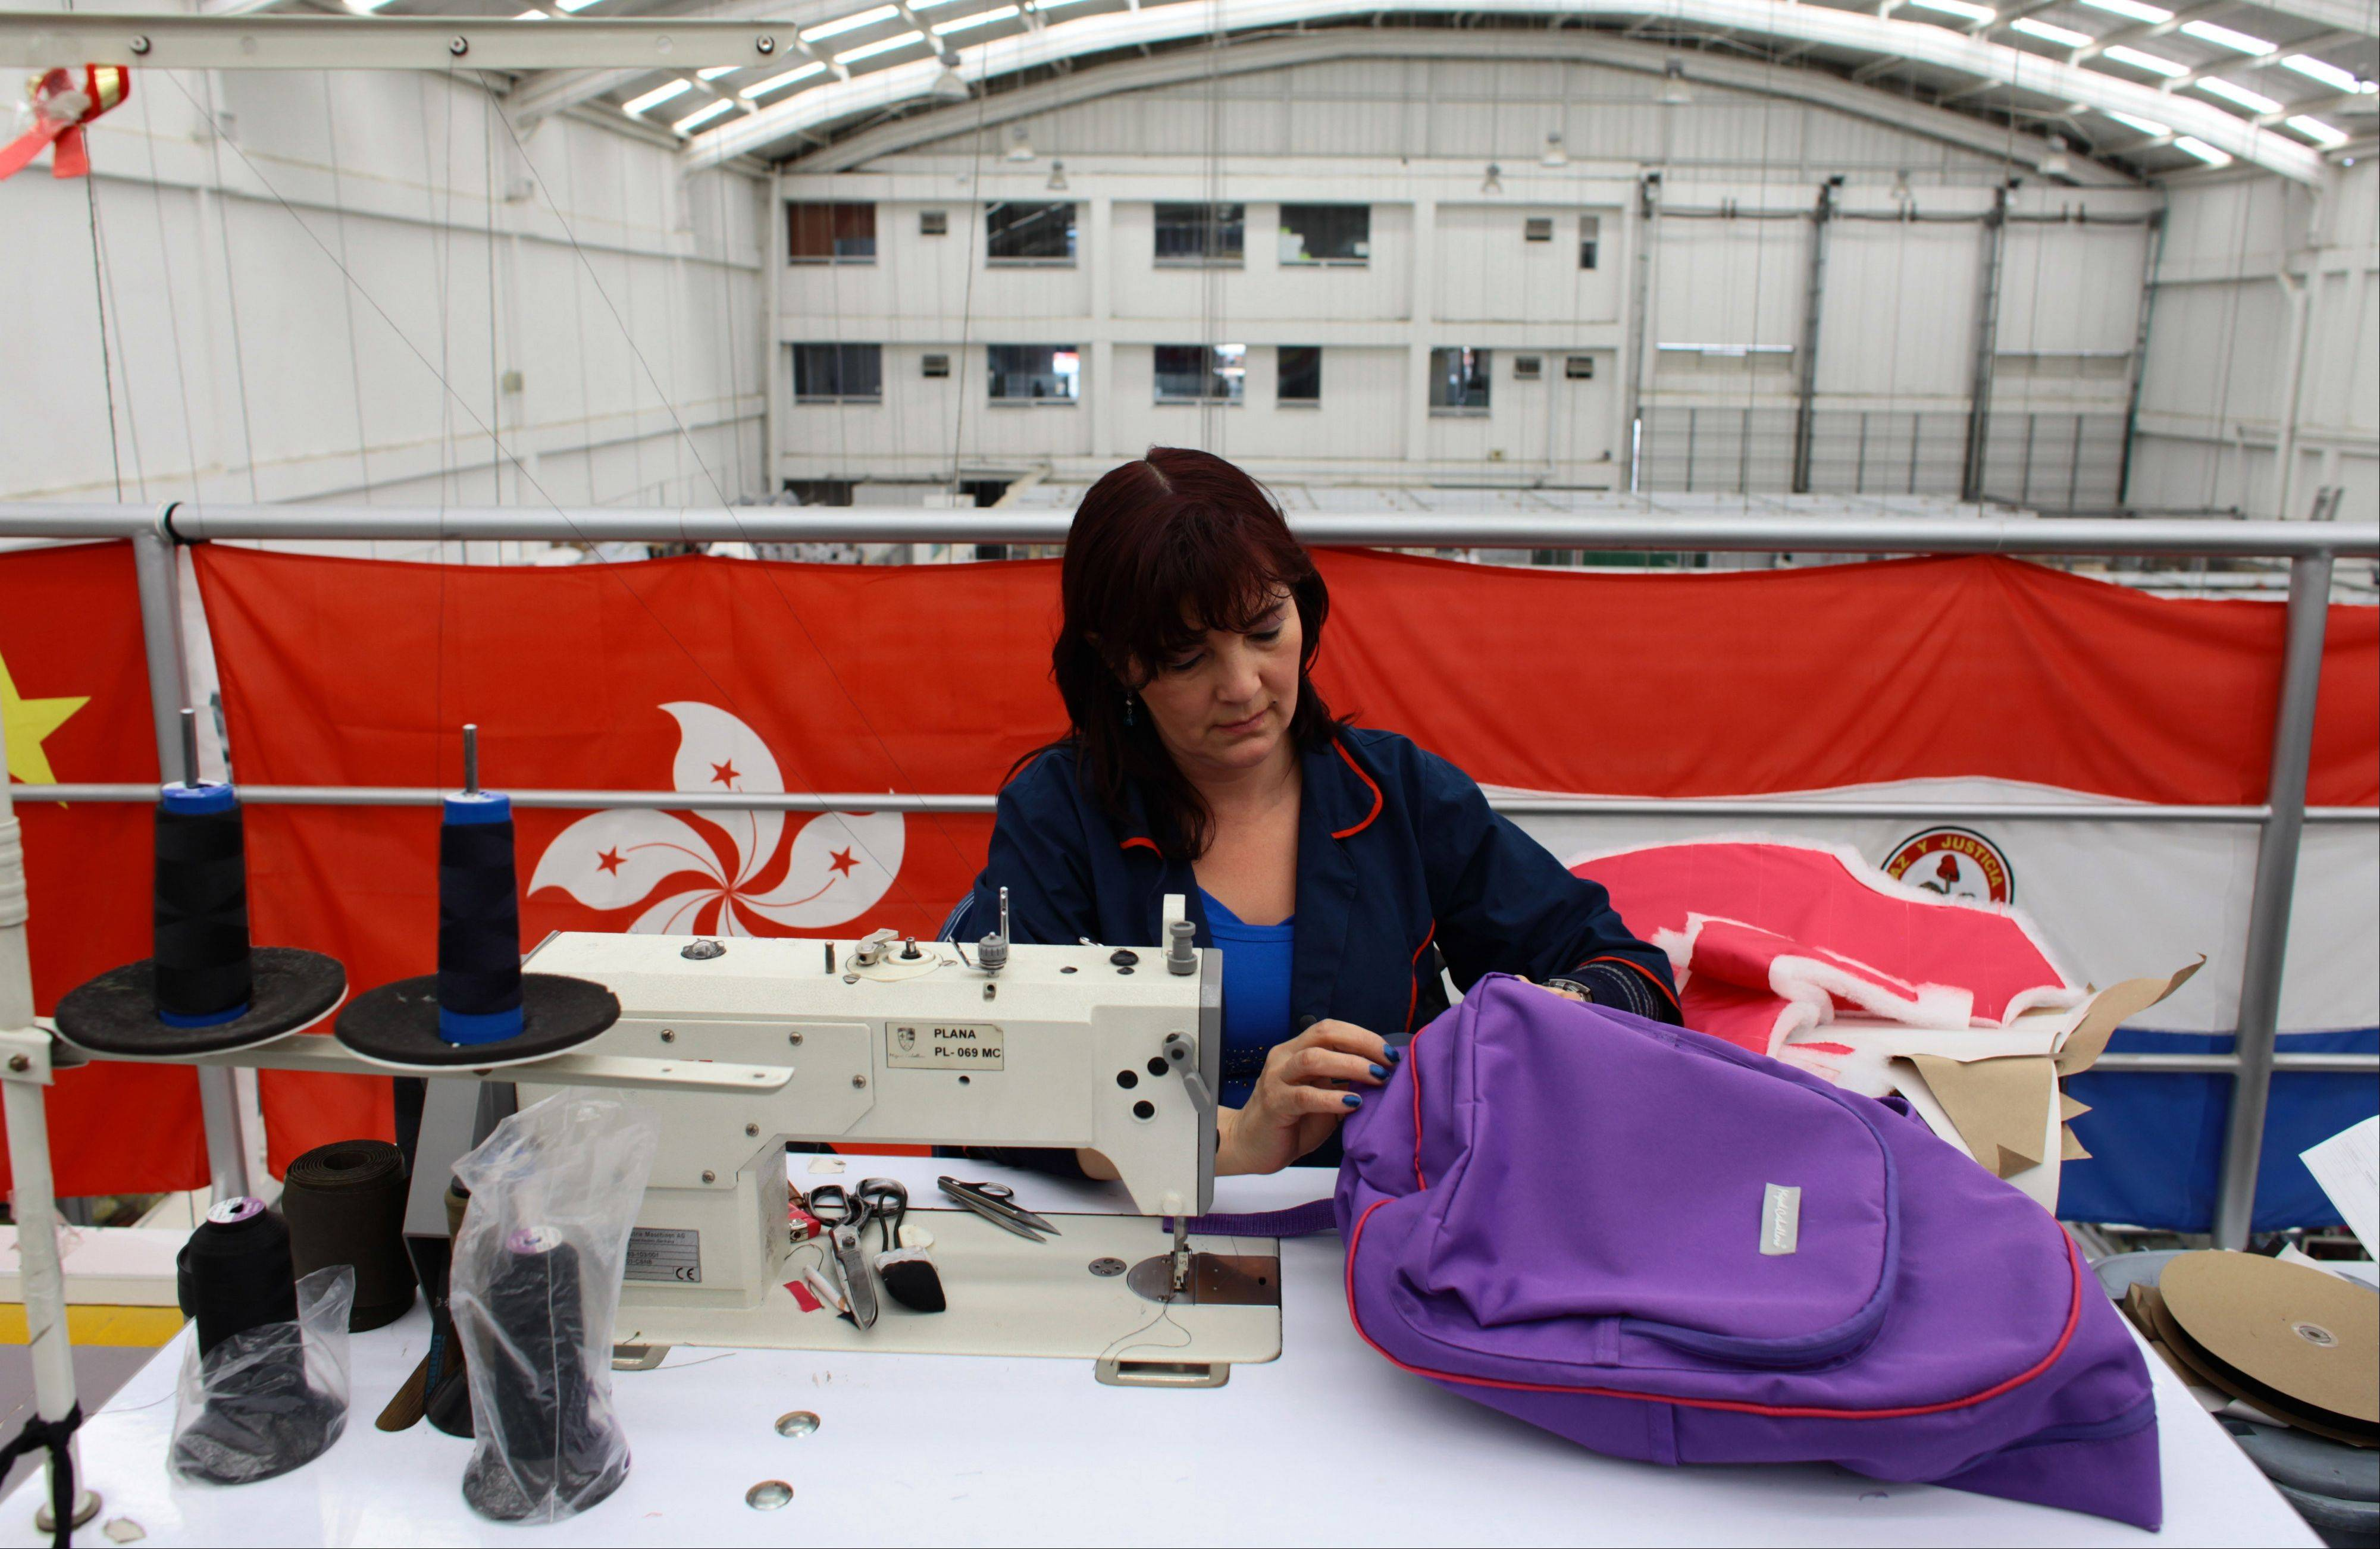 A seamstress works Thursday on an armored backpack designed for a child at the Miguel Caballero factory on the outskirts of Bogota, Colombia.